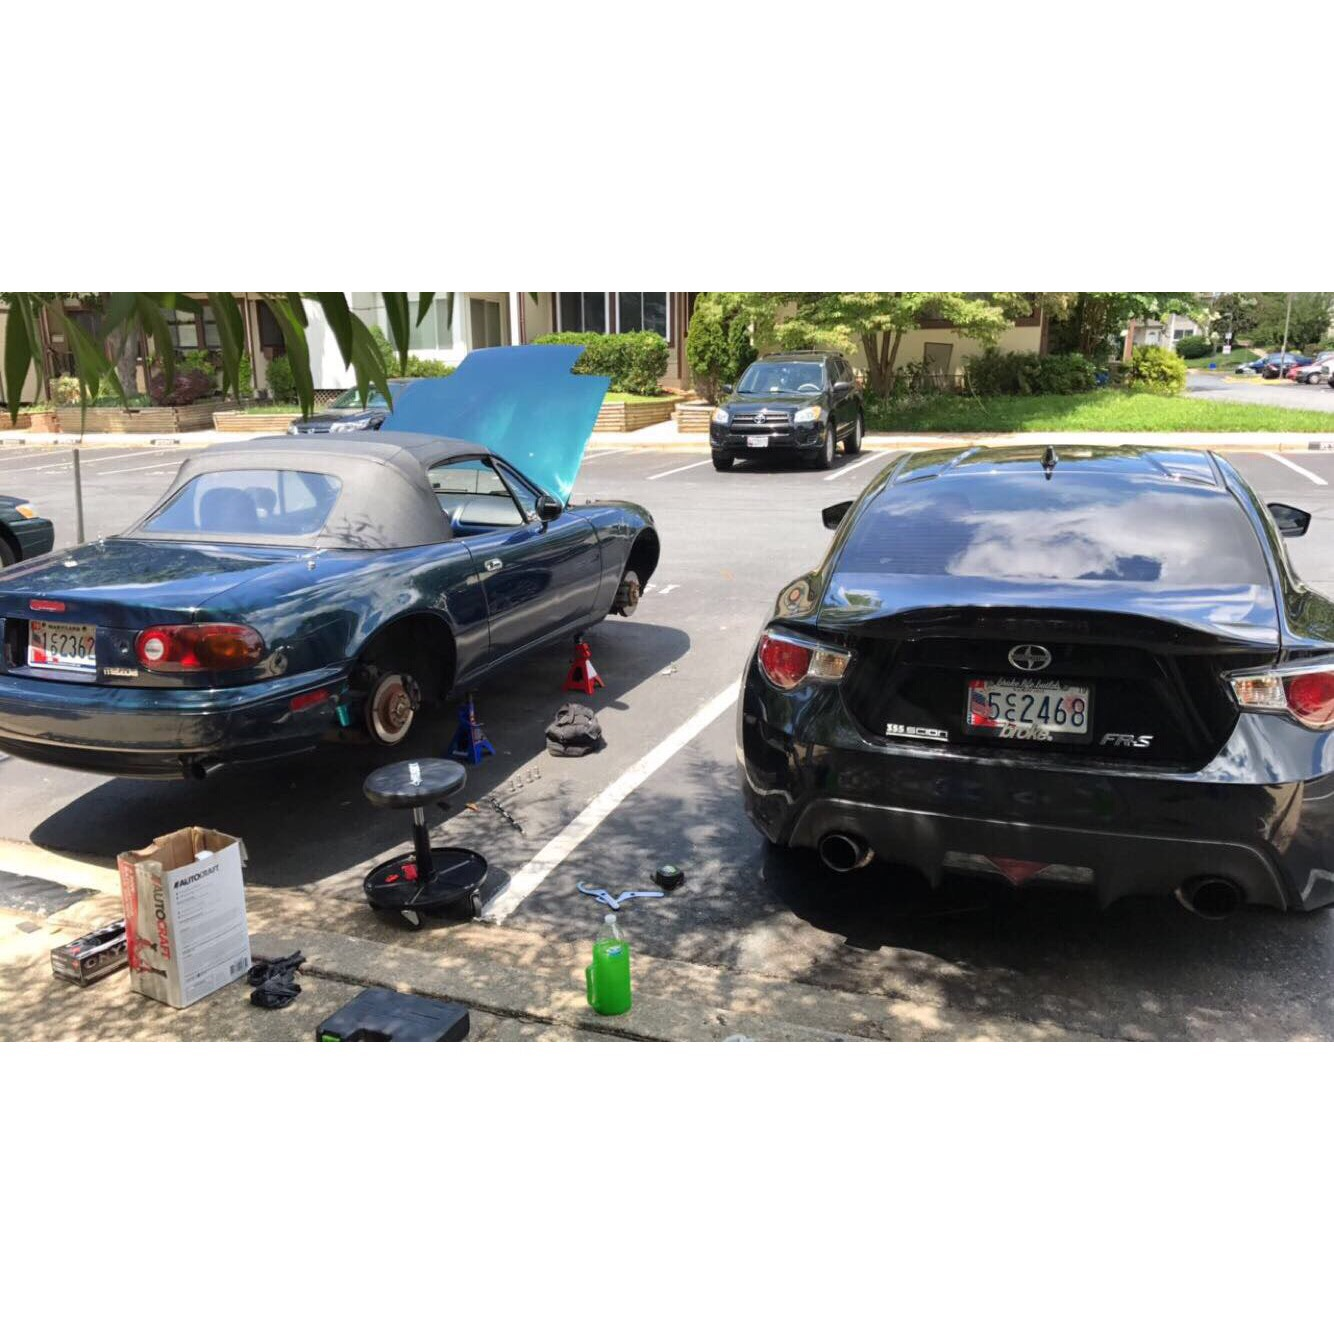 FRS, next to Miata, Lifted on jack stands.